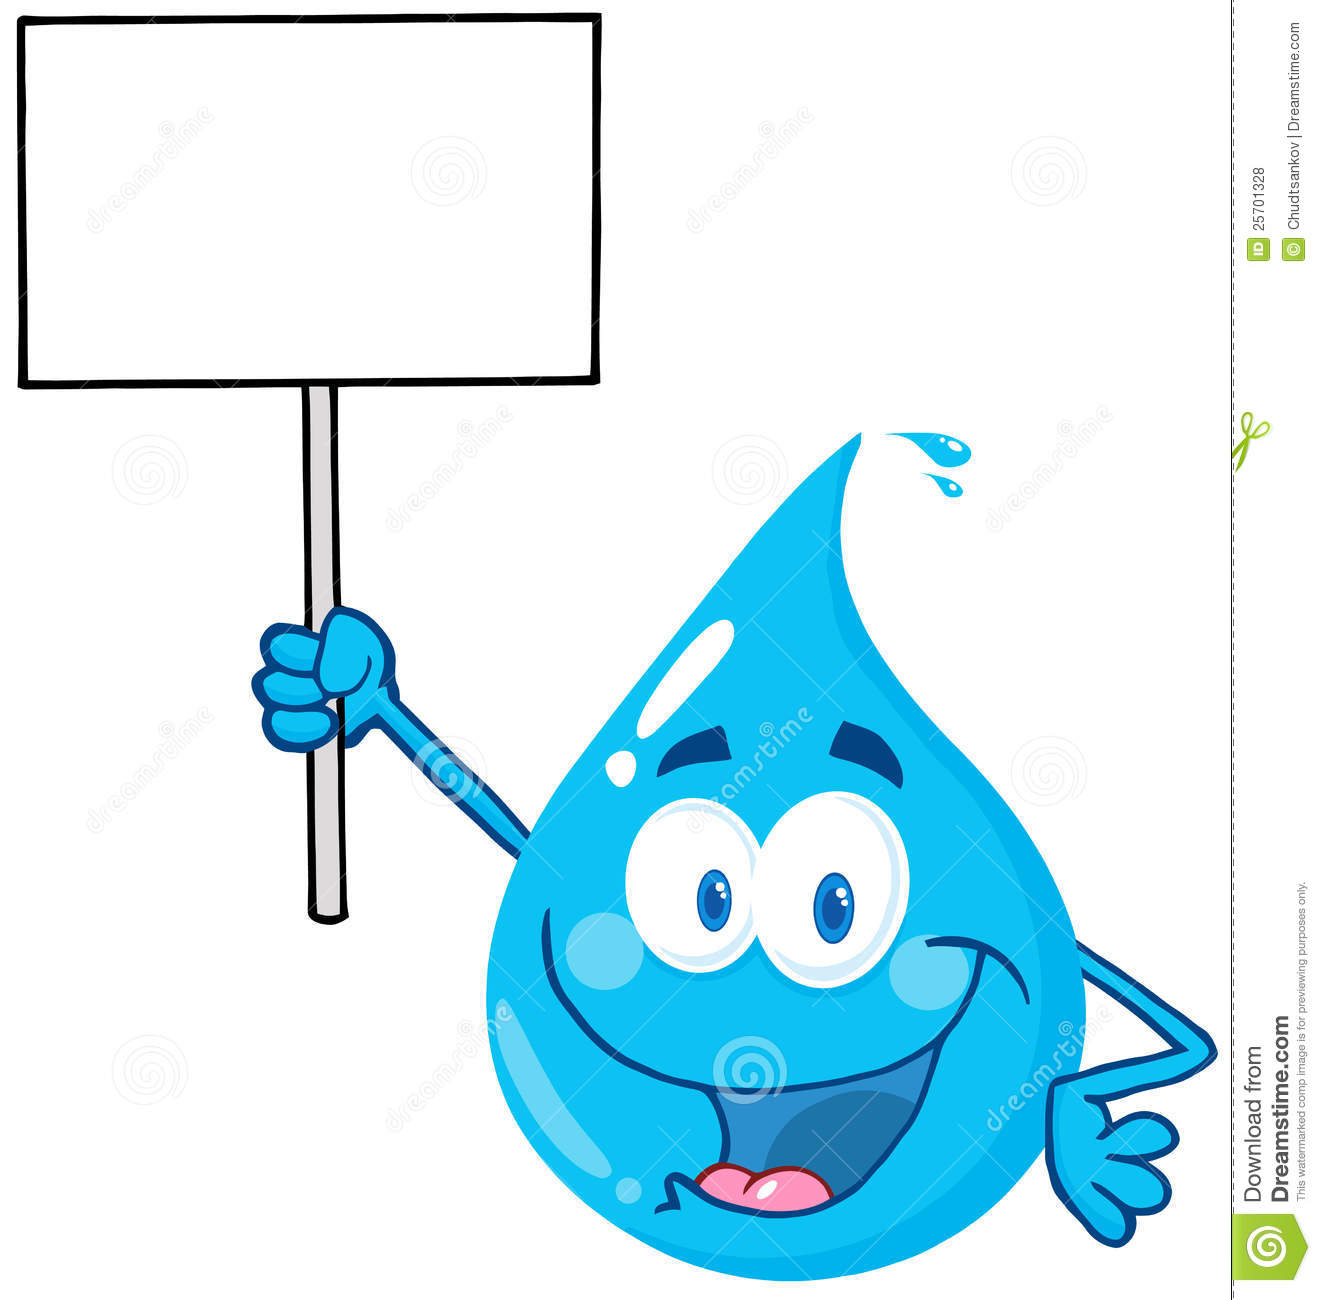 Water clipart water use. Free download best on